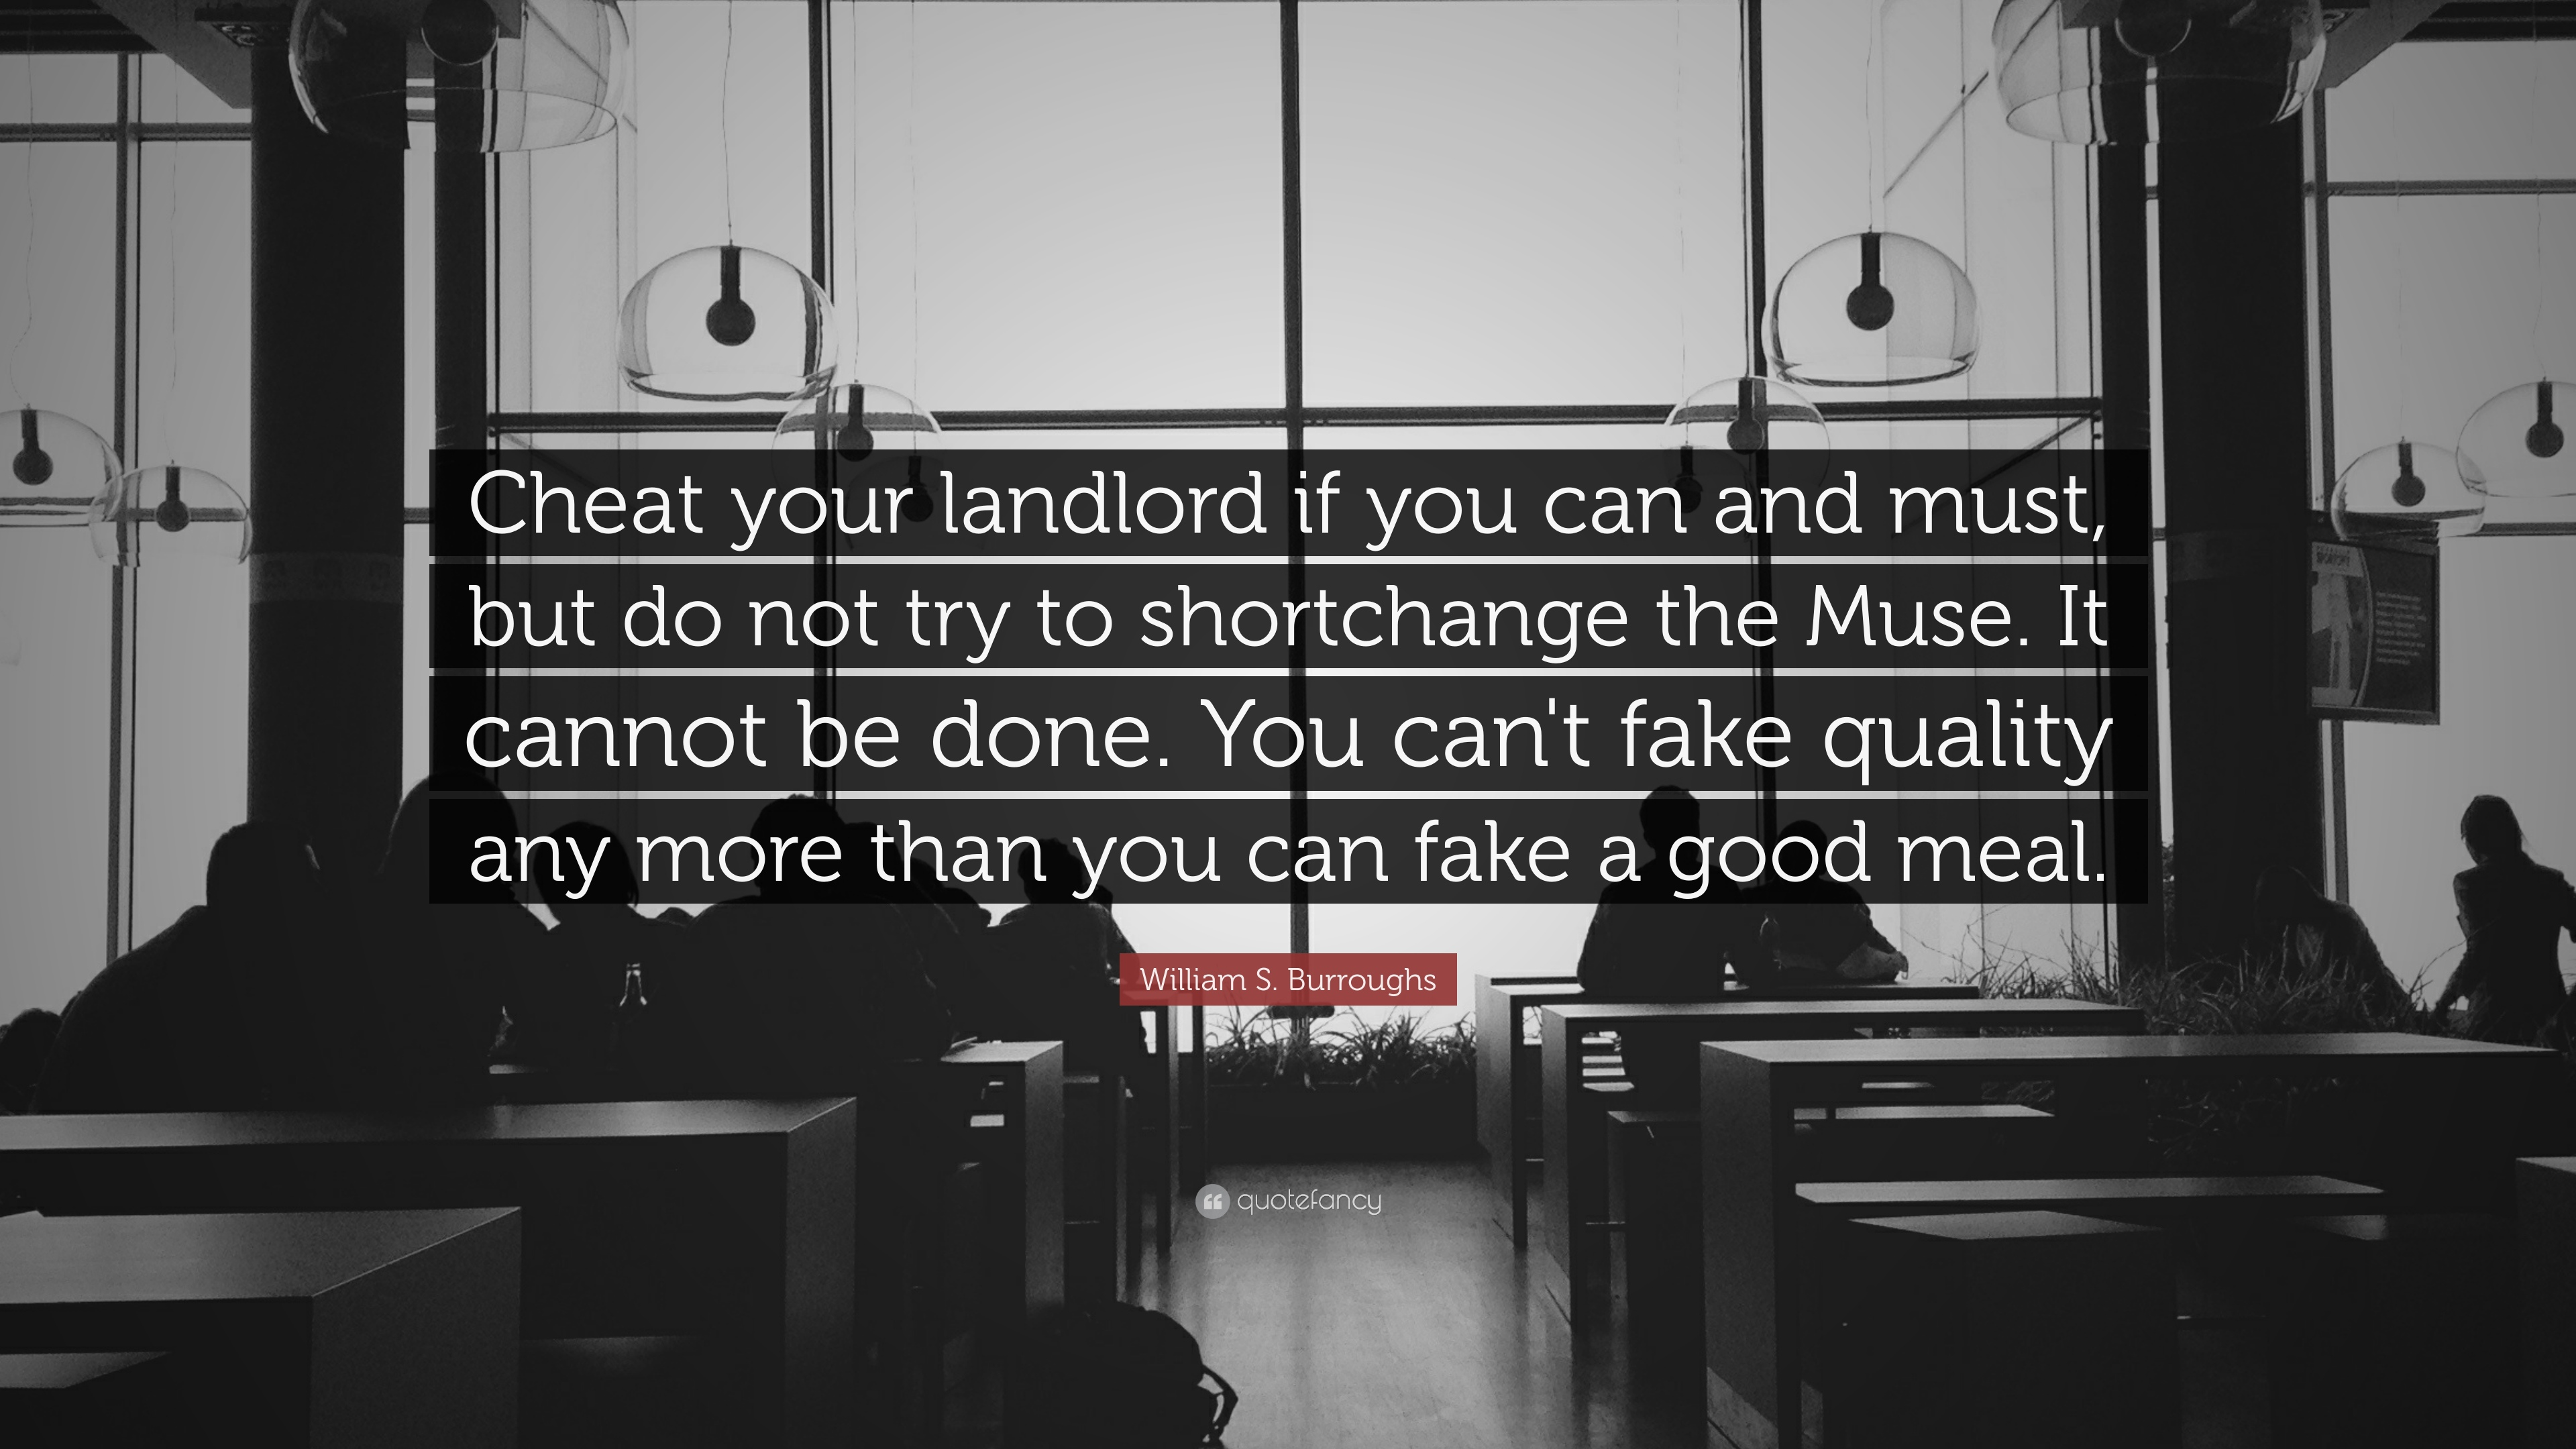 William S Burroughs Quote Cheat Your Landlord If You Can And Must